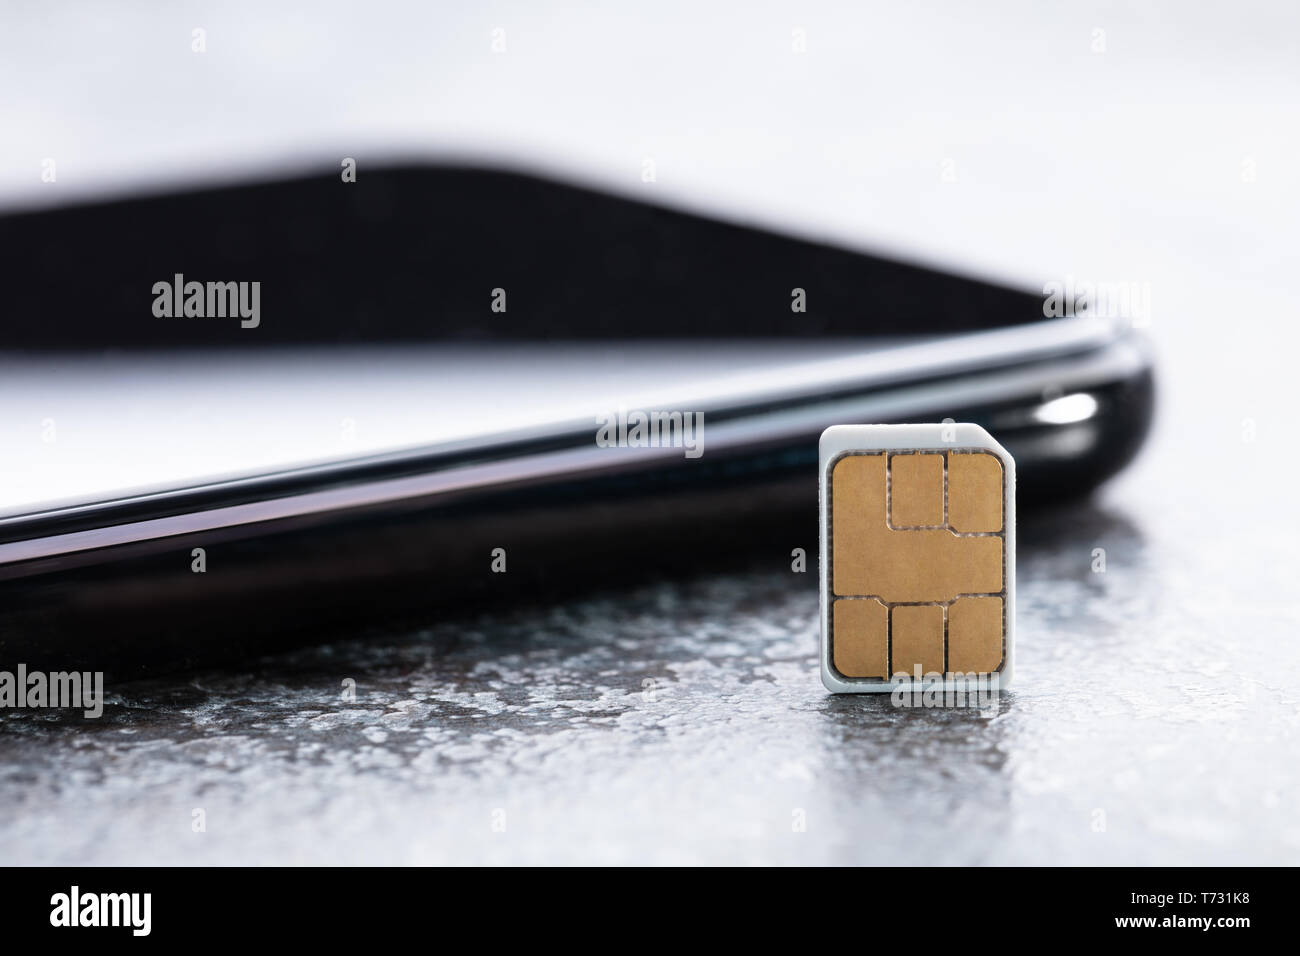 Prepaid Cards Stock Photos & Prepaid Cards Stock Images - Alamy